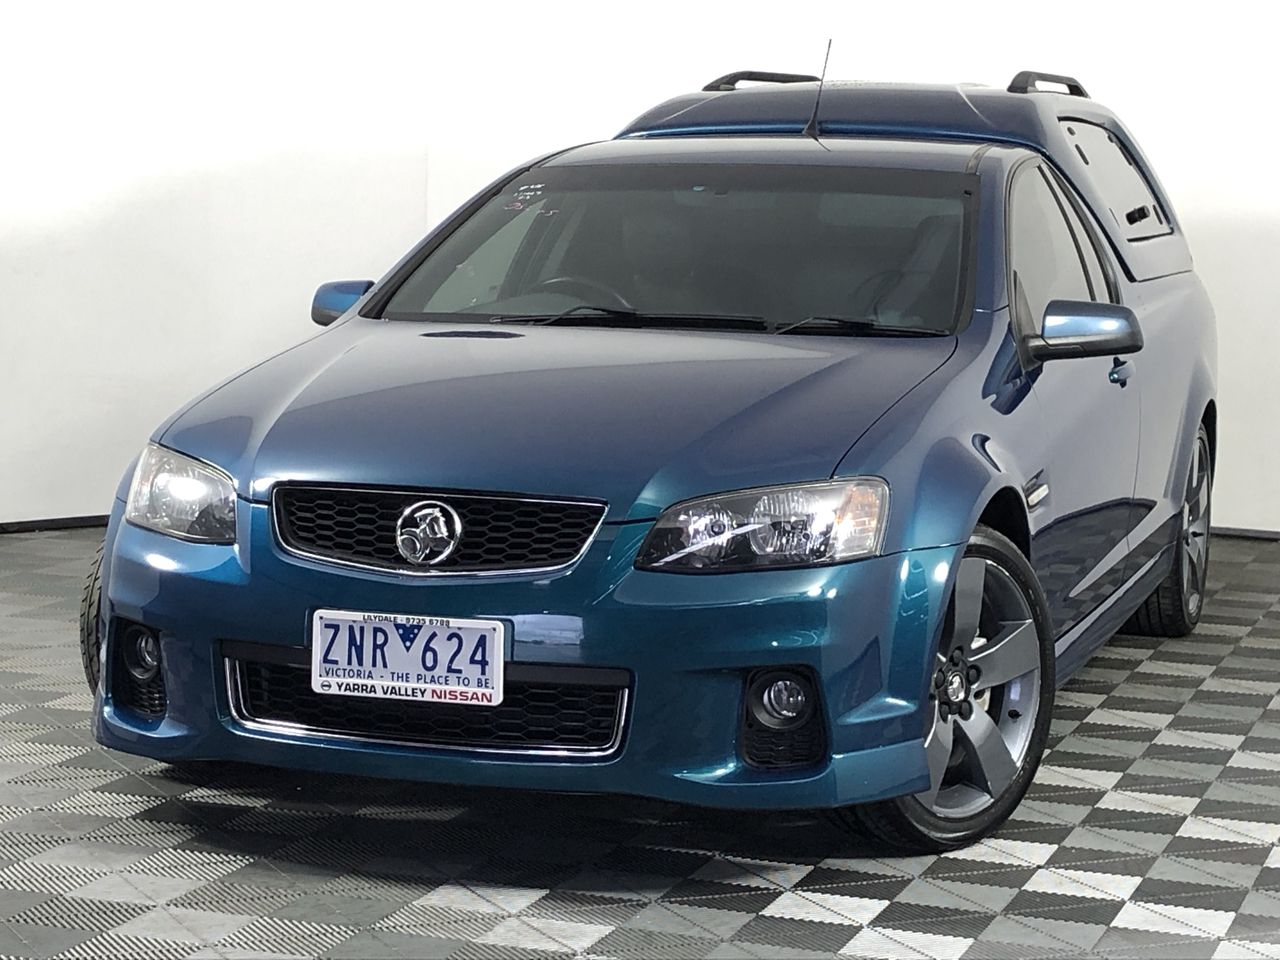 2012 Holden Ute SV6 Z-SERIES VE II Automatic Ute